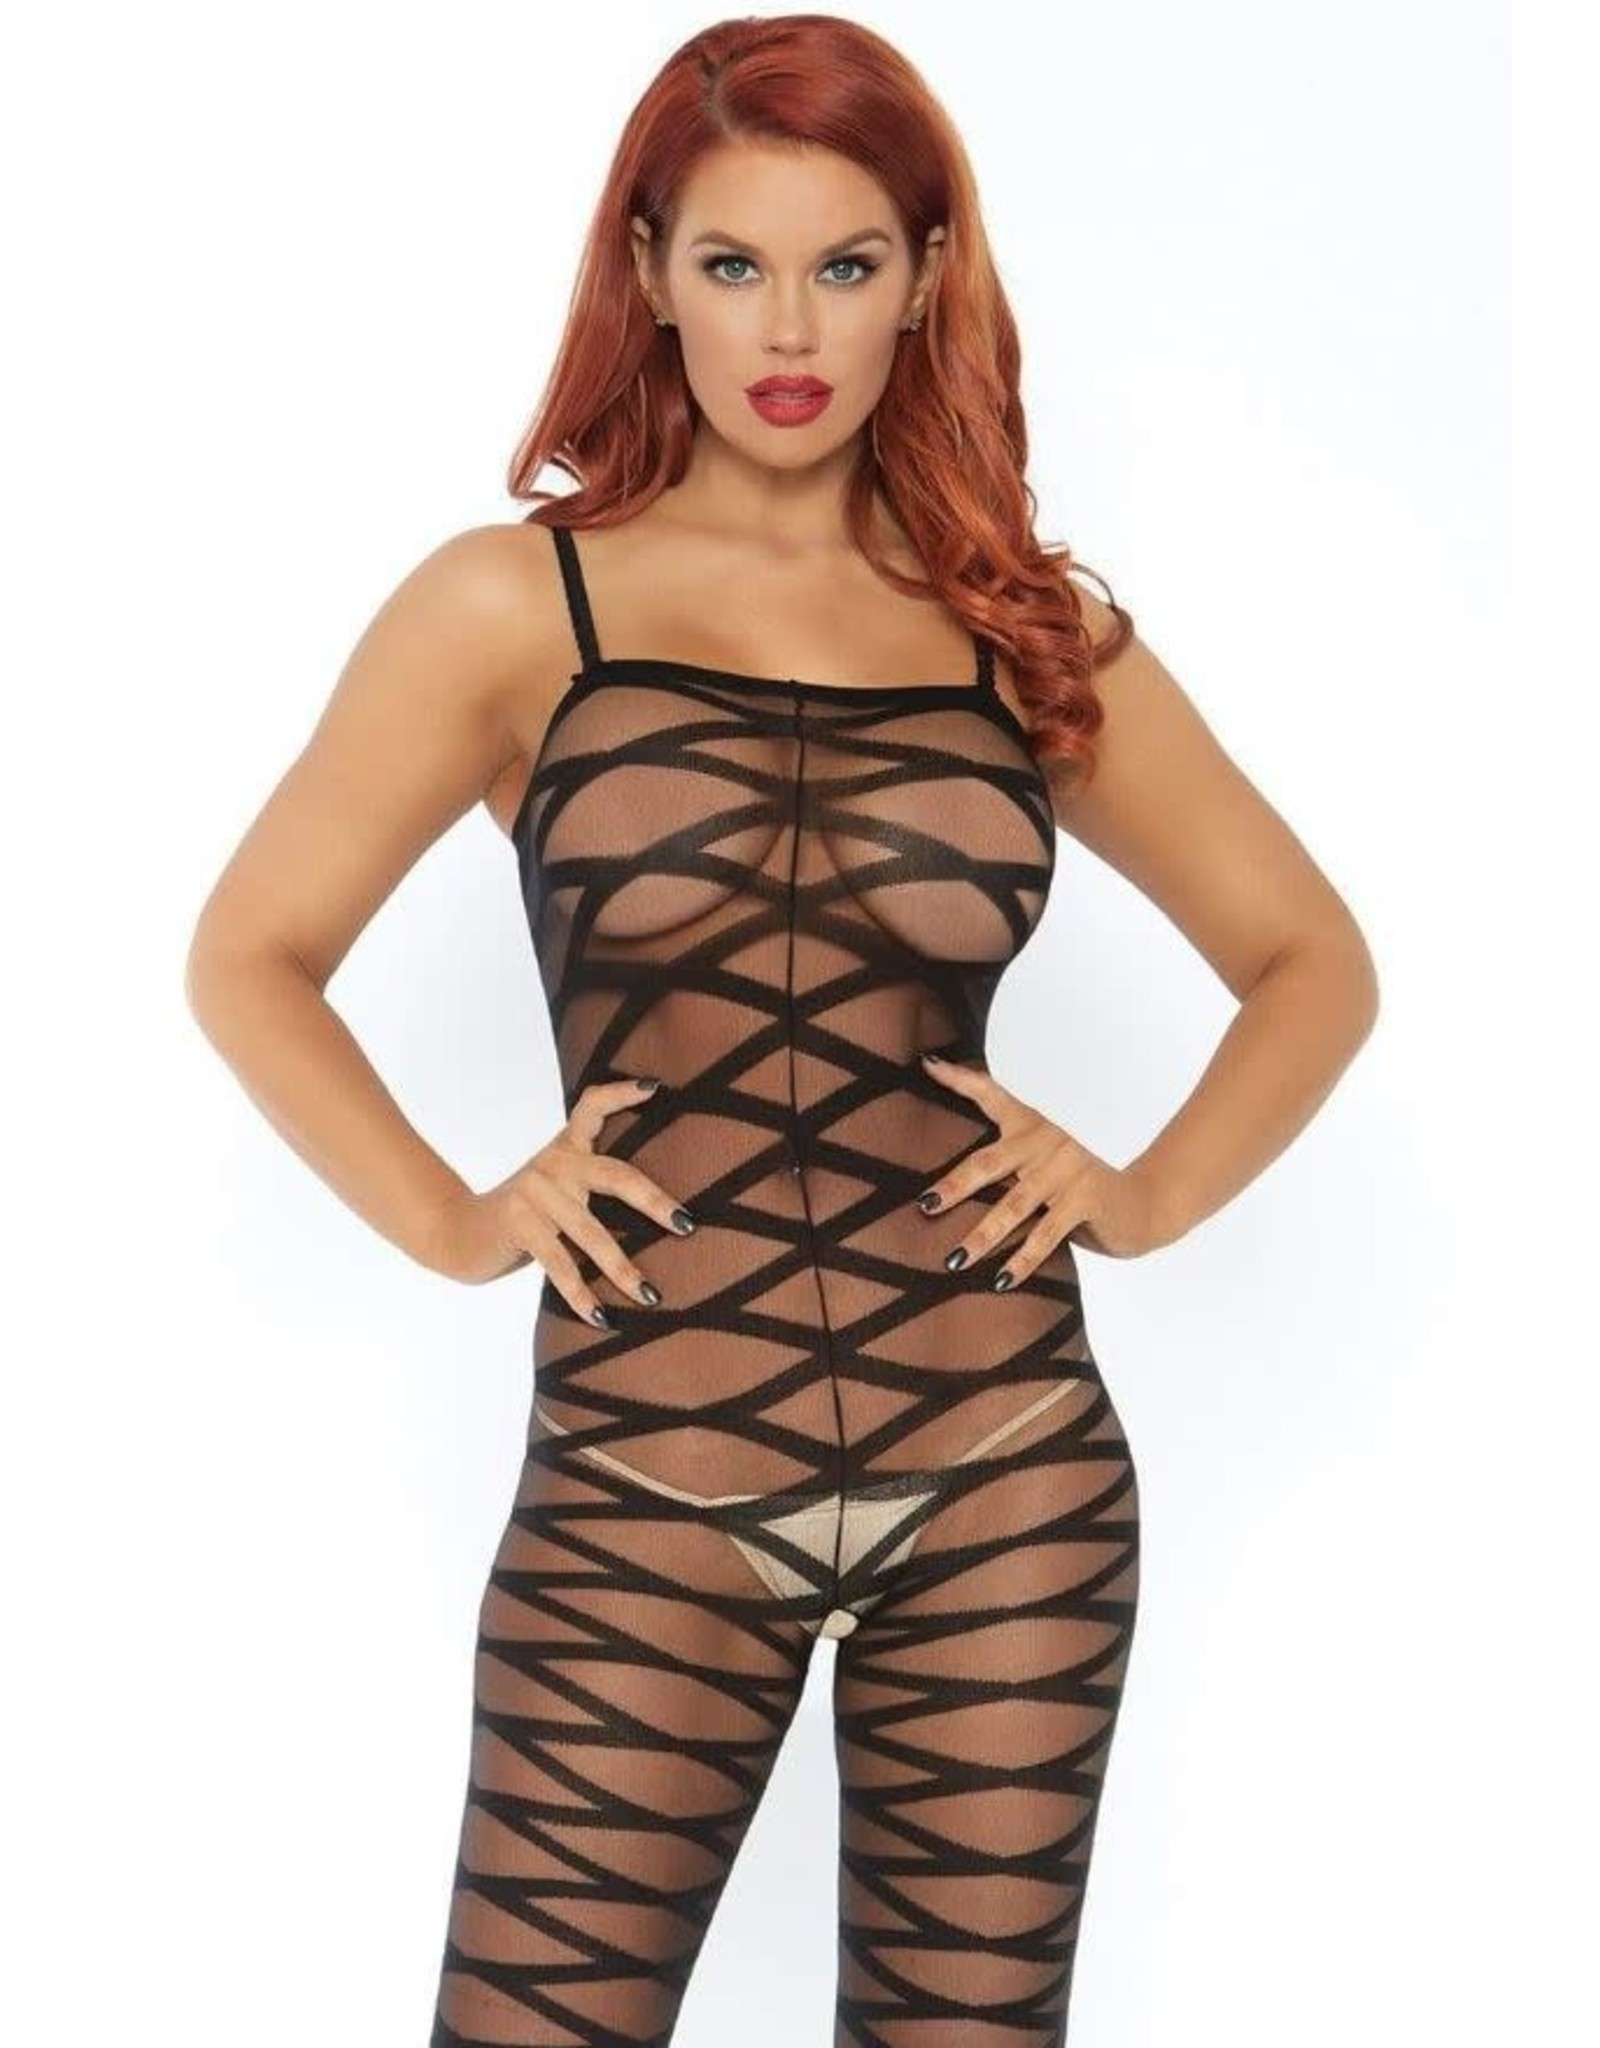 LEG AVENUE BODYSTOCKING SHEER CRISS CROSS BLK